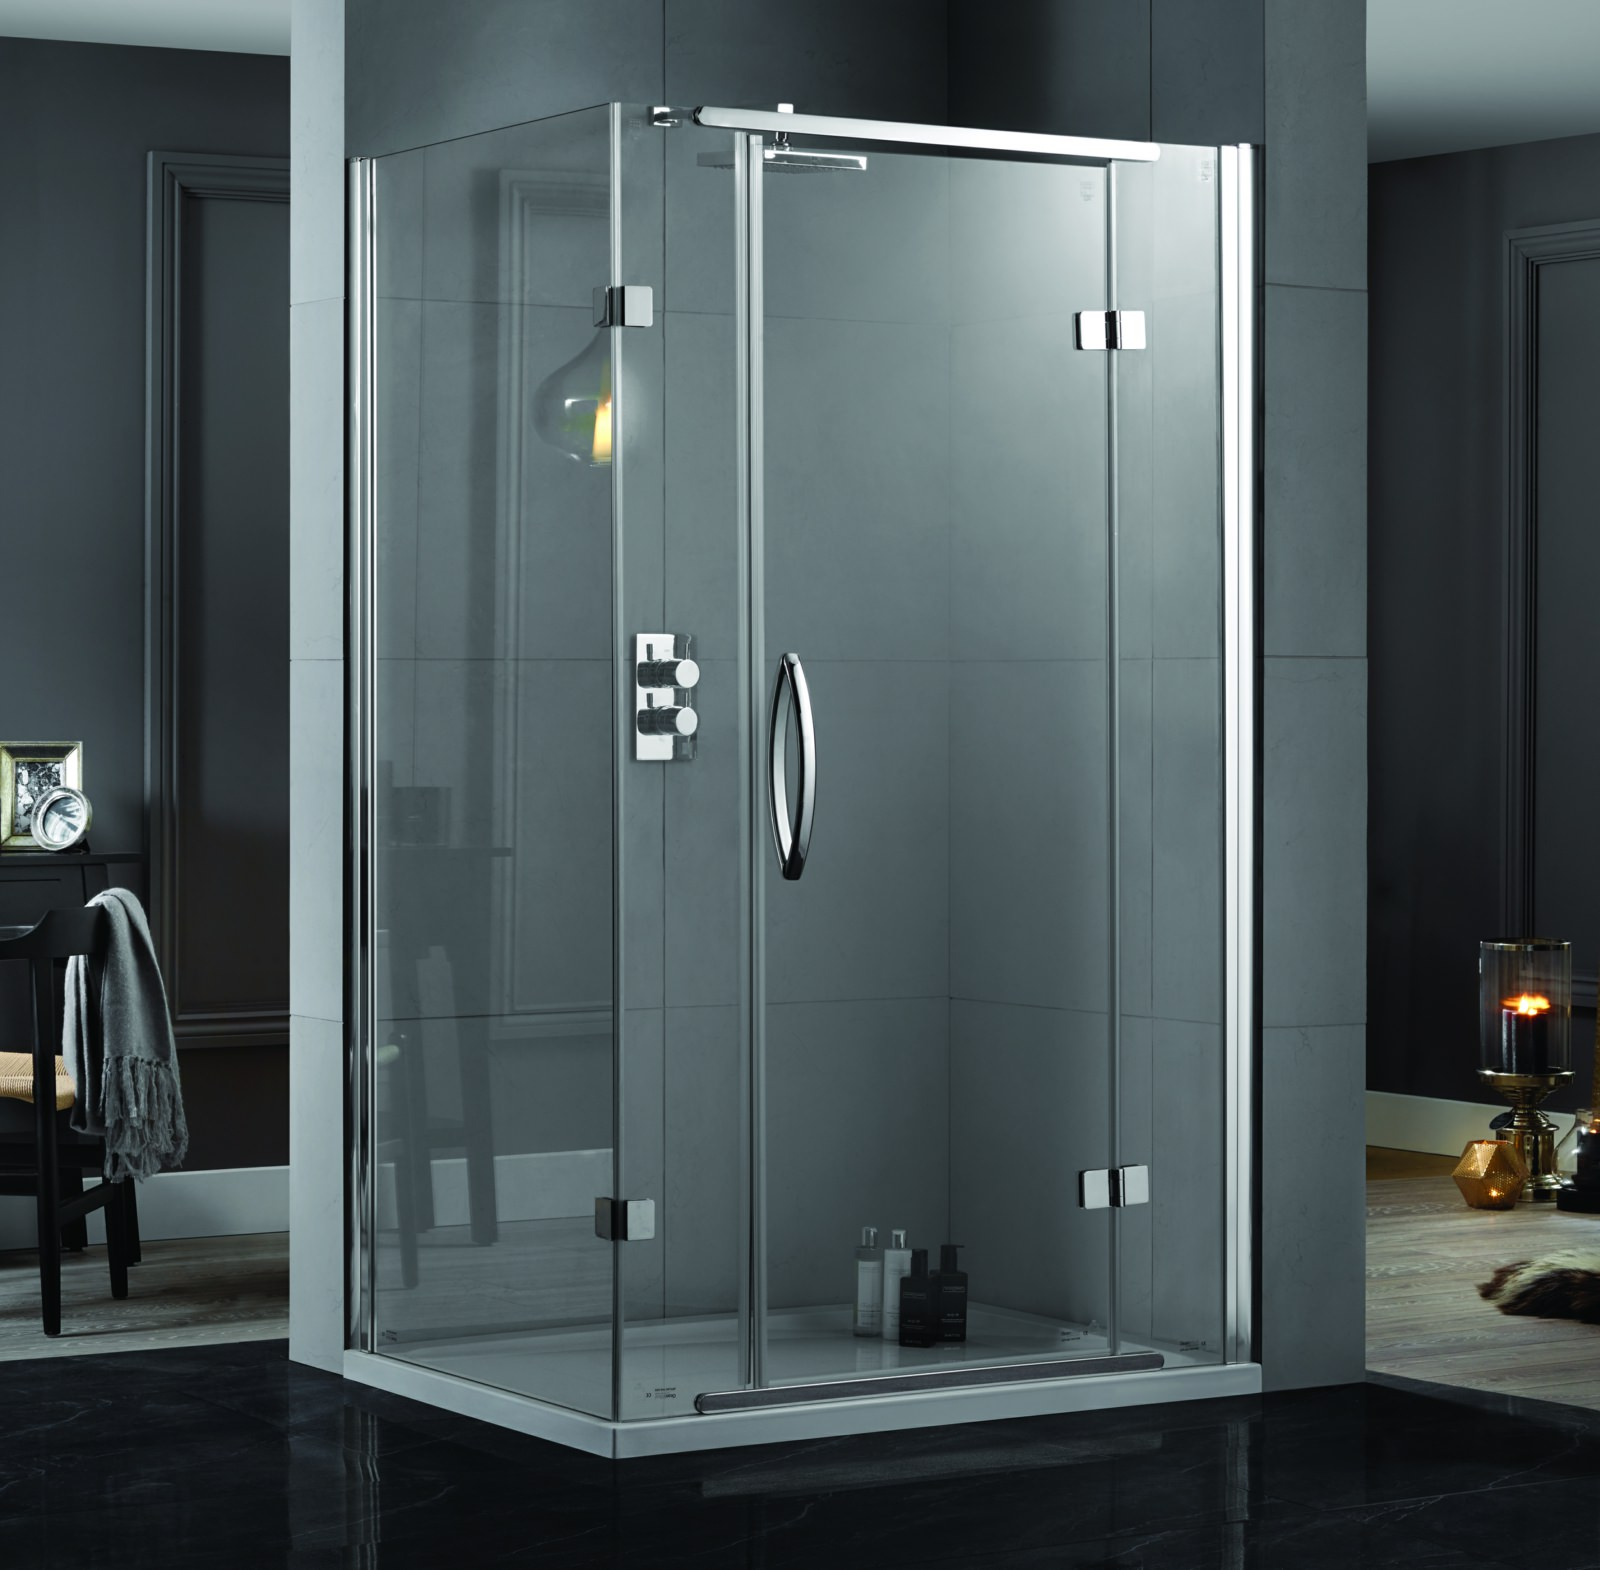 Aquadart inline 1200 x 900mm 2 sided hinged shower door for 1200 hinged shower door